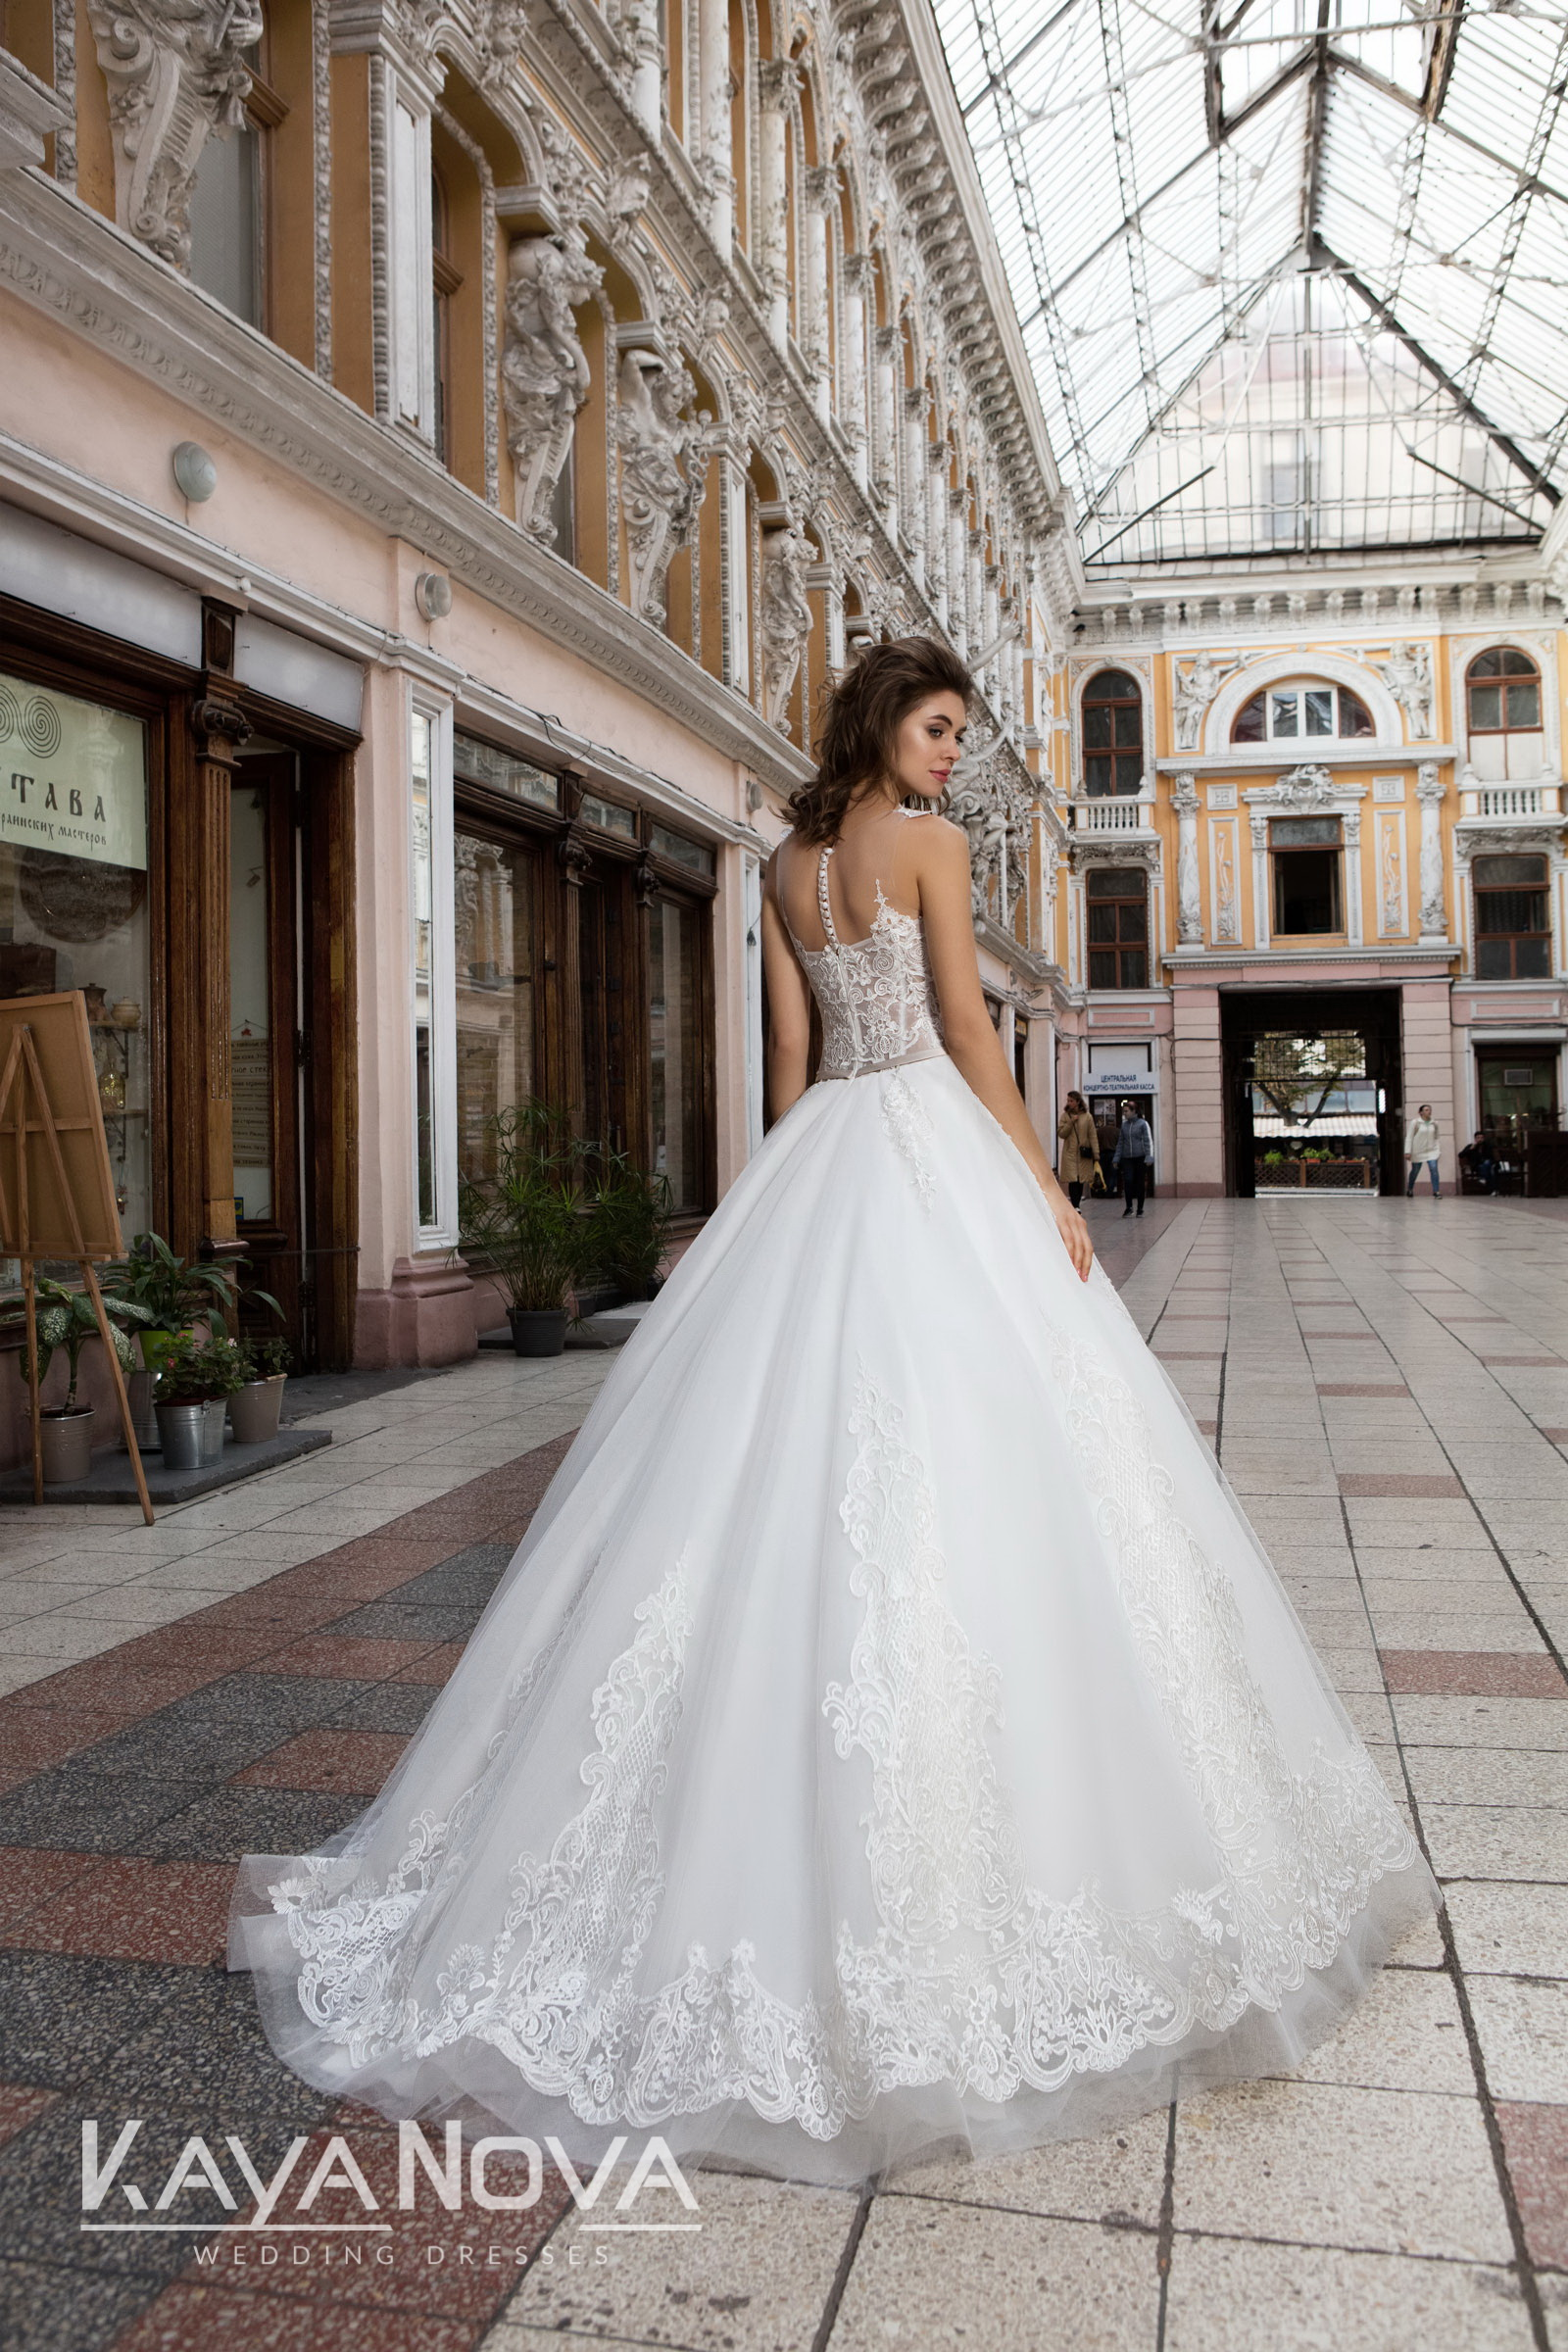 https://kayawedding.com/images/stories/virtuemart/product/Luisa 2.jpg